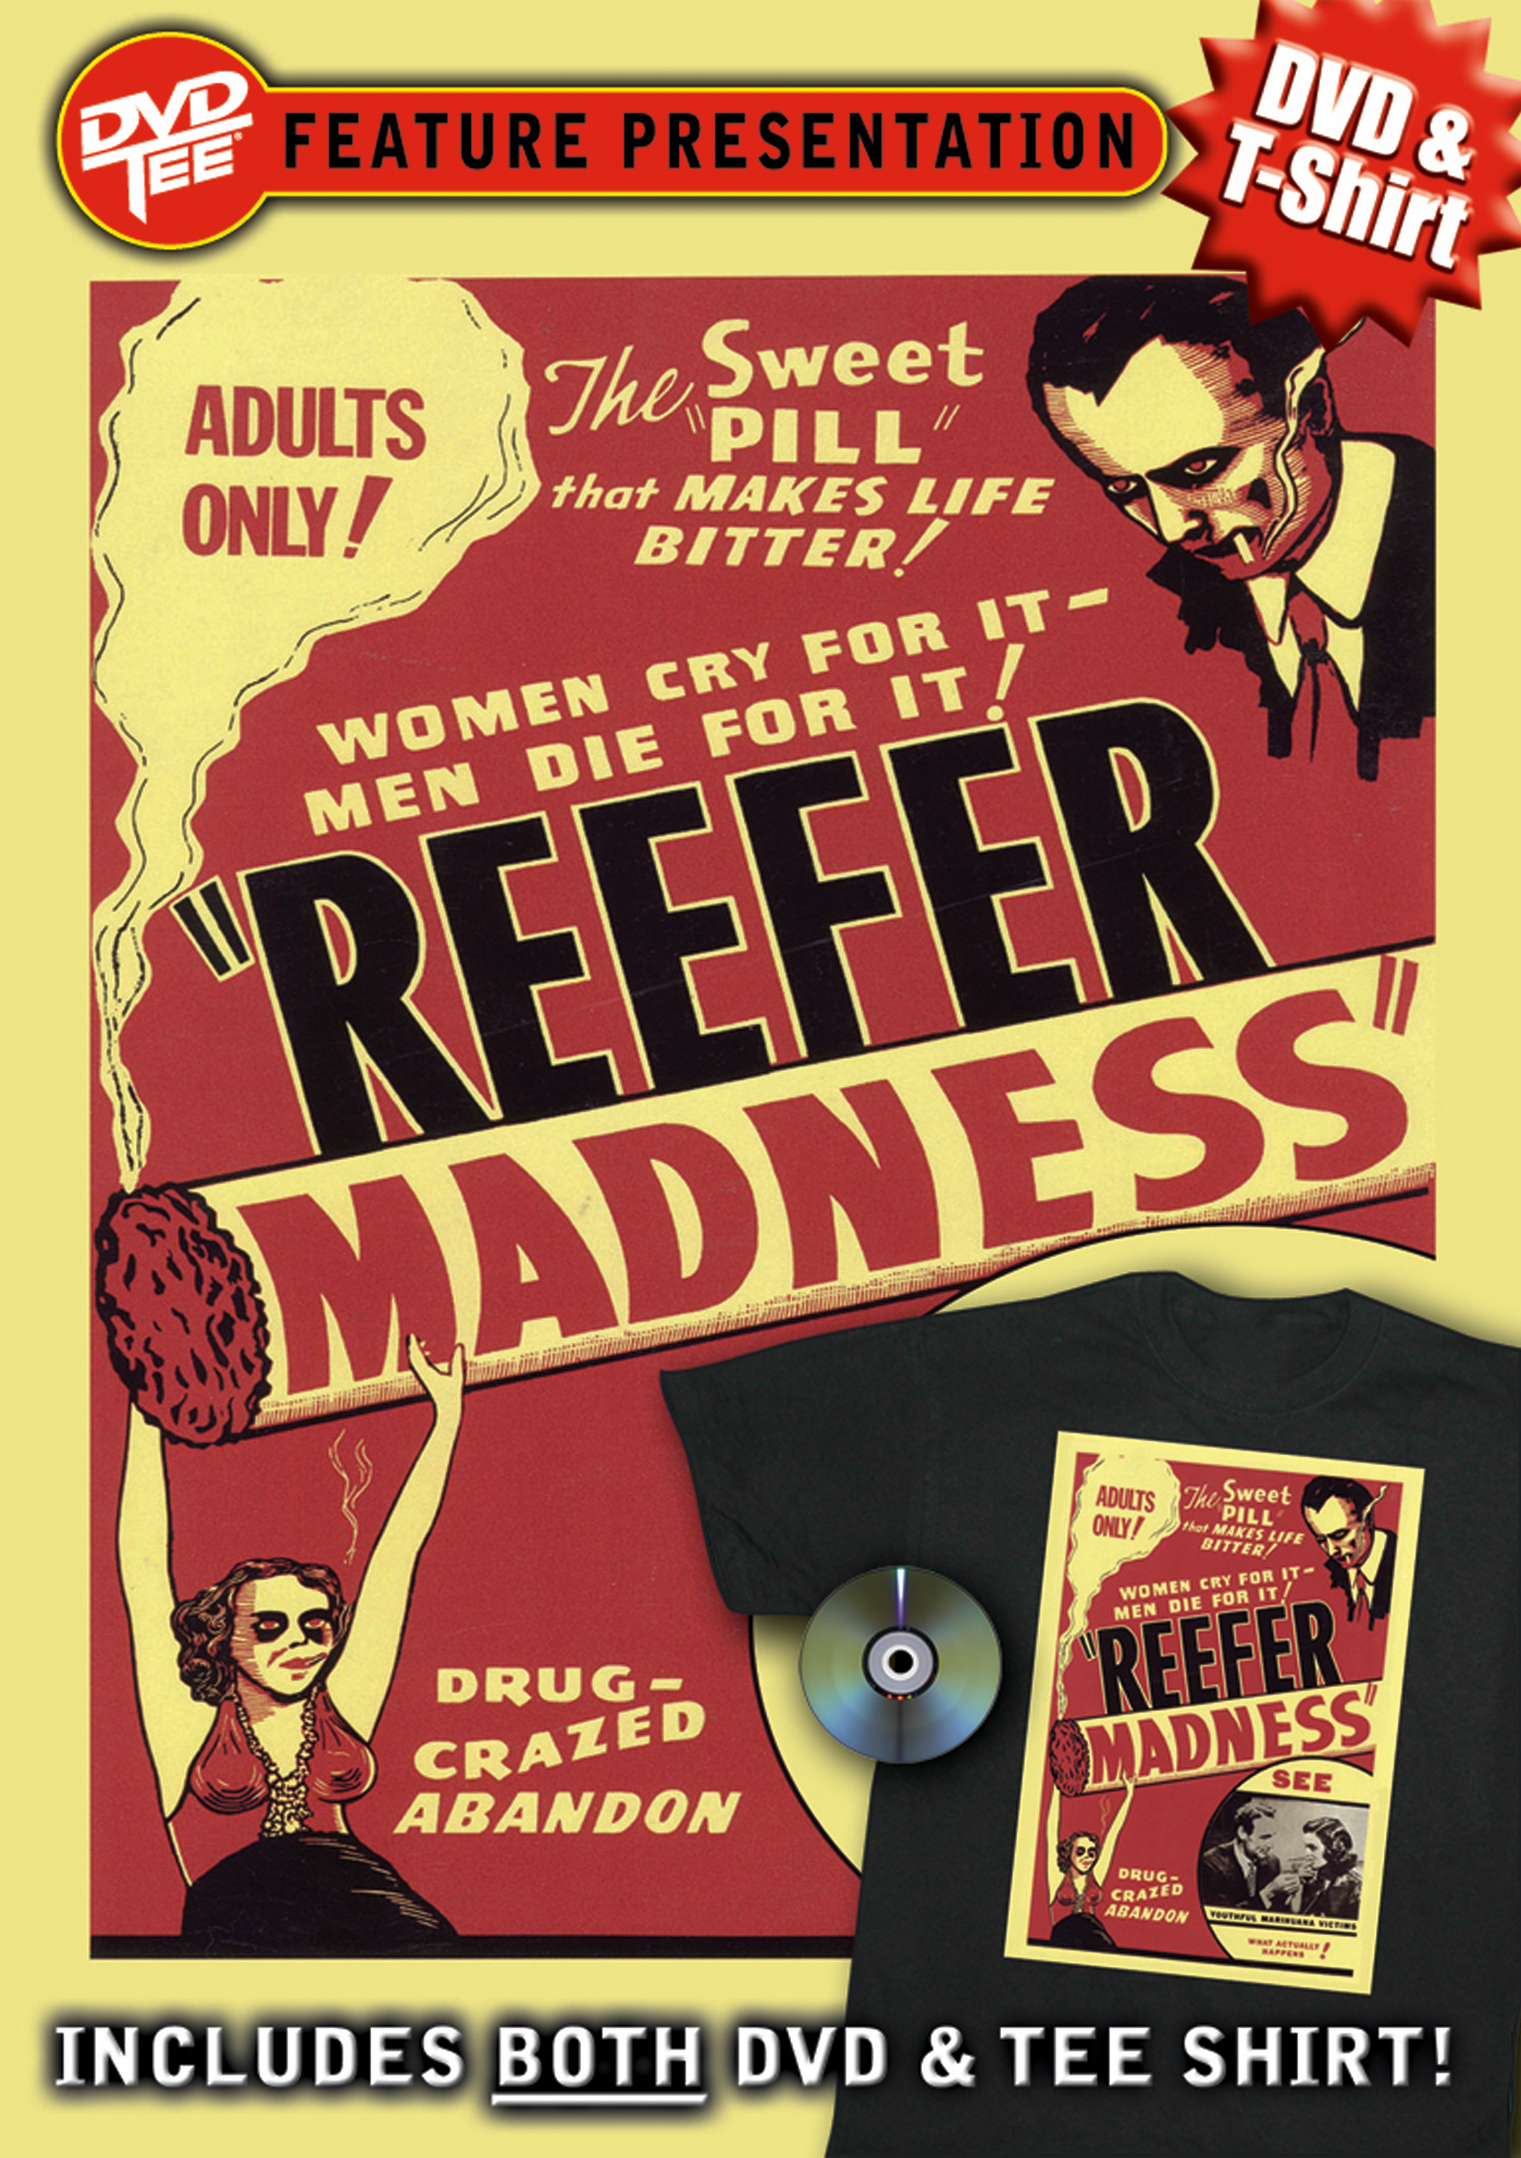 reefer madness musical streaming